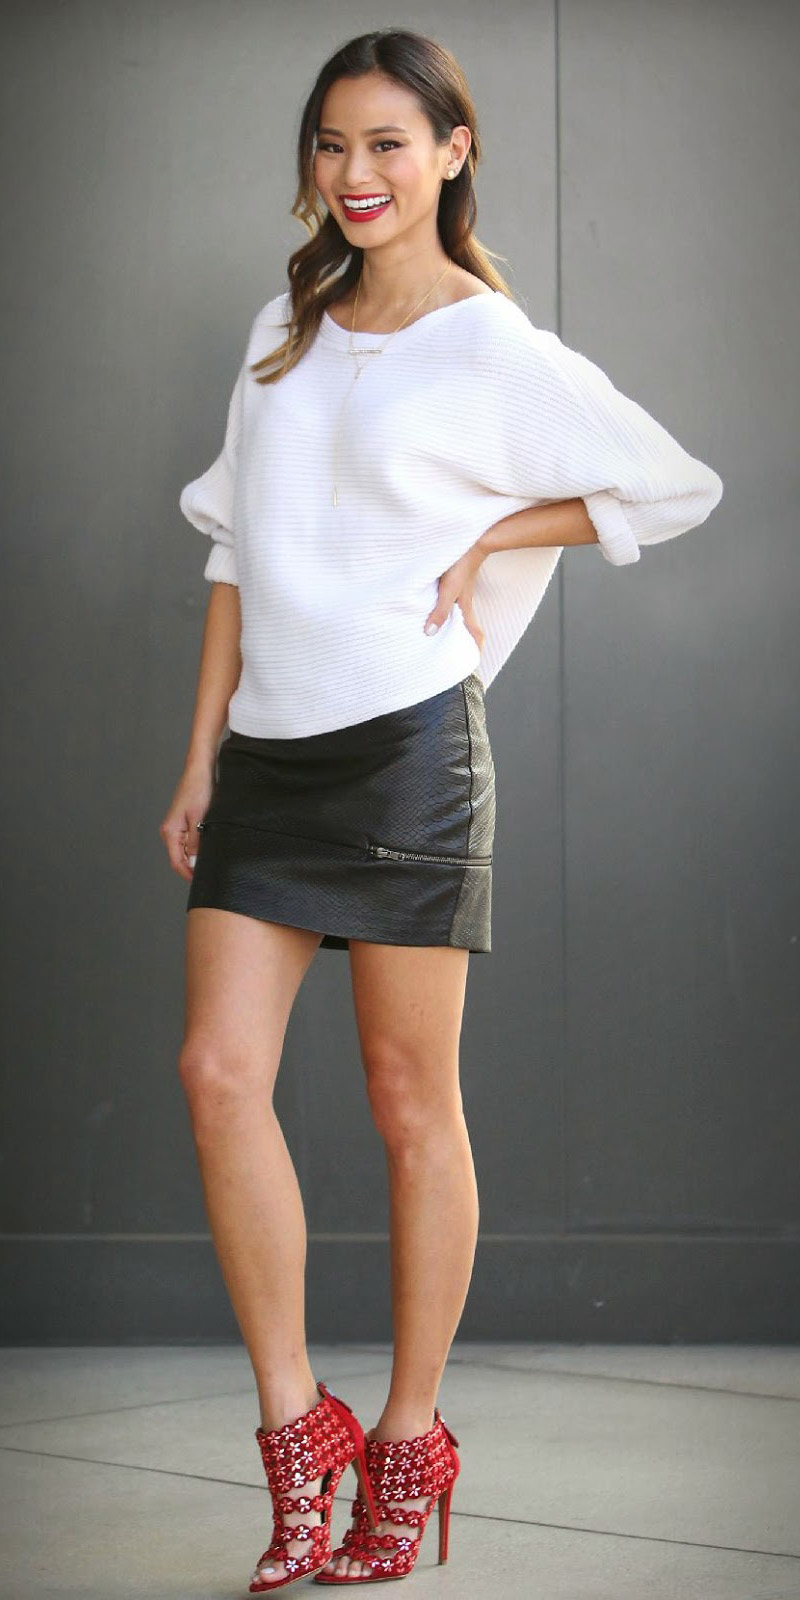 black-mini-skirt-white-sweater-jamiechung-wear-style-fashion-fall-winter-black-shoe-sandalh-brun-dinner.jpg